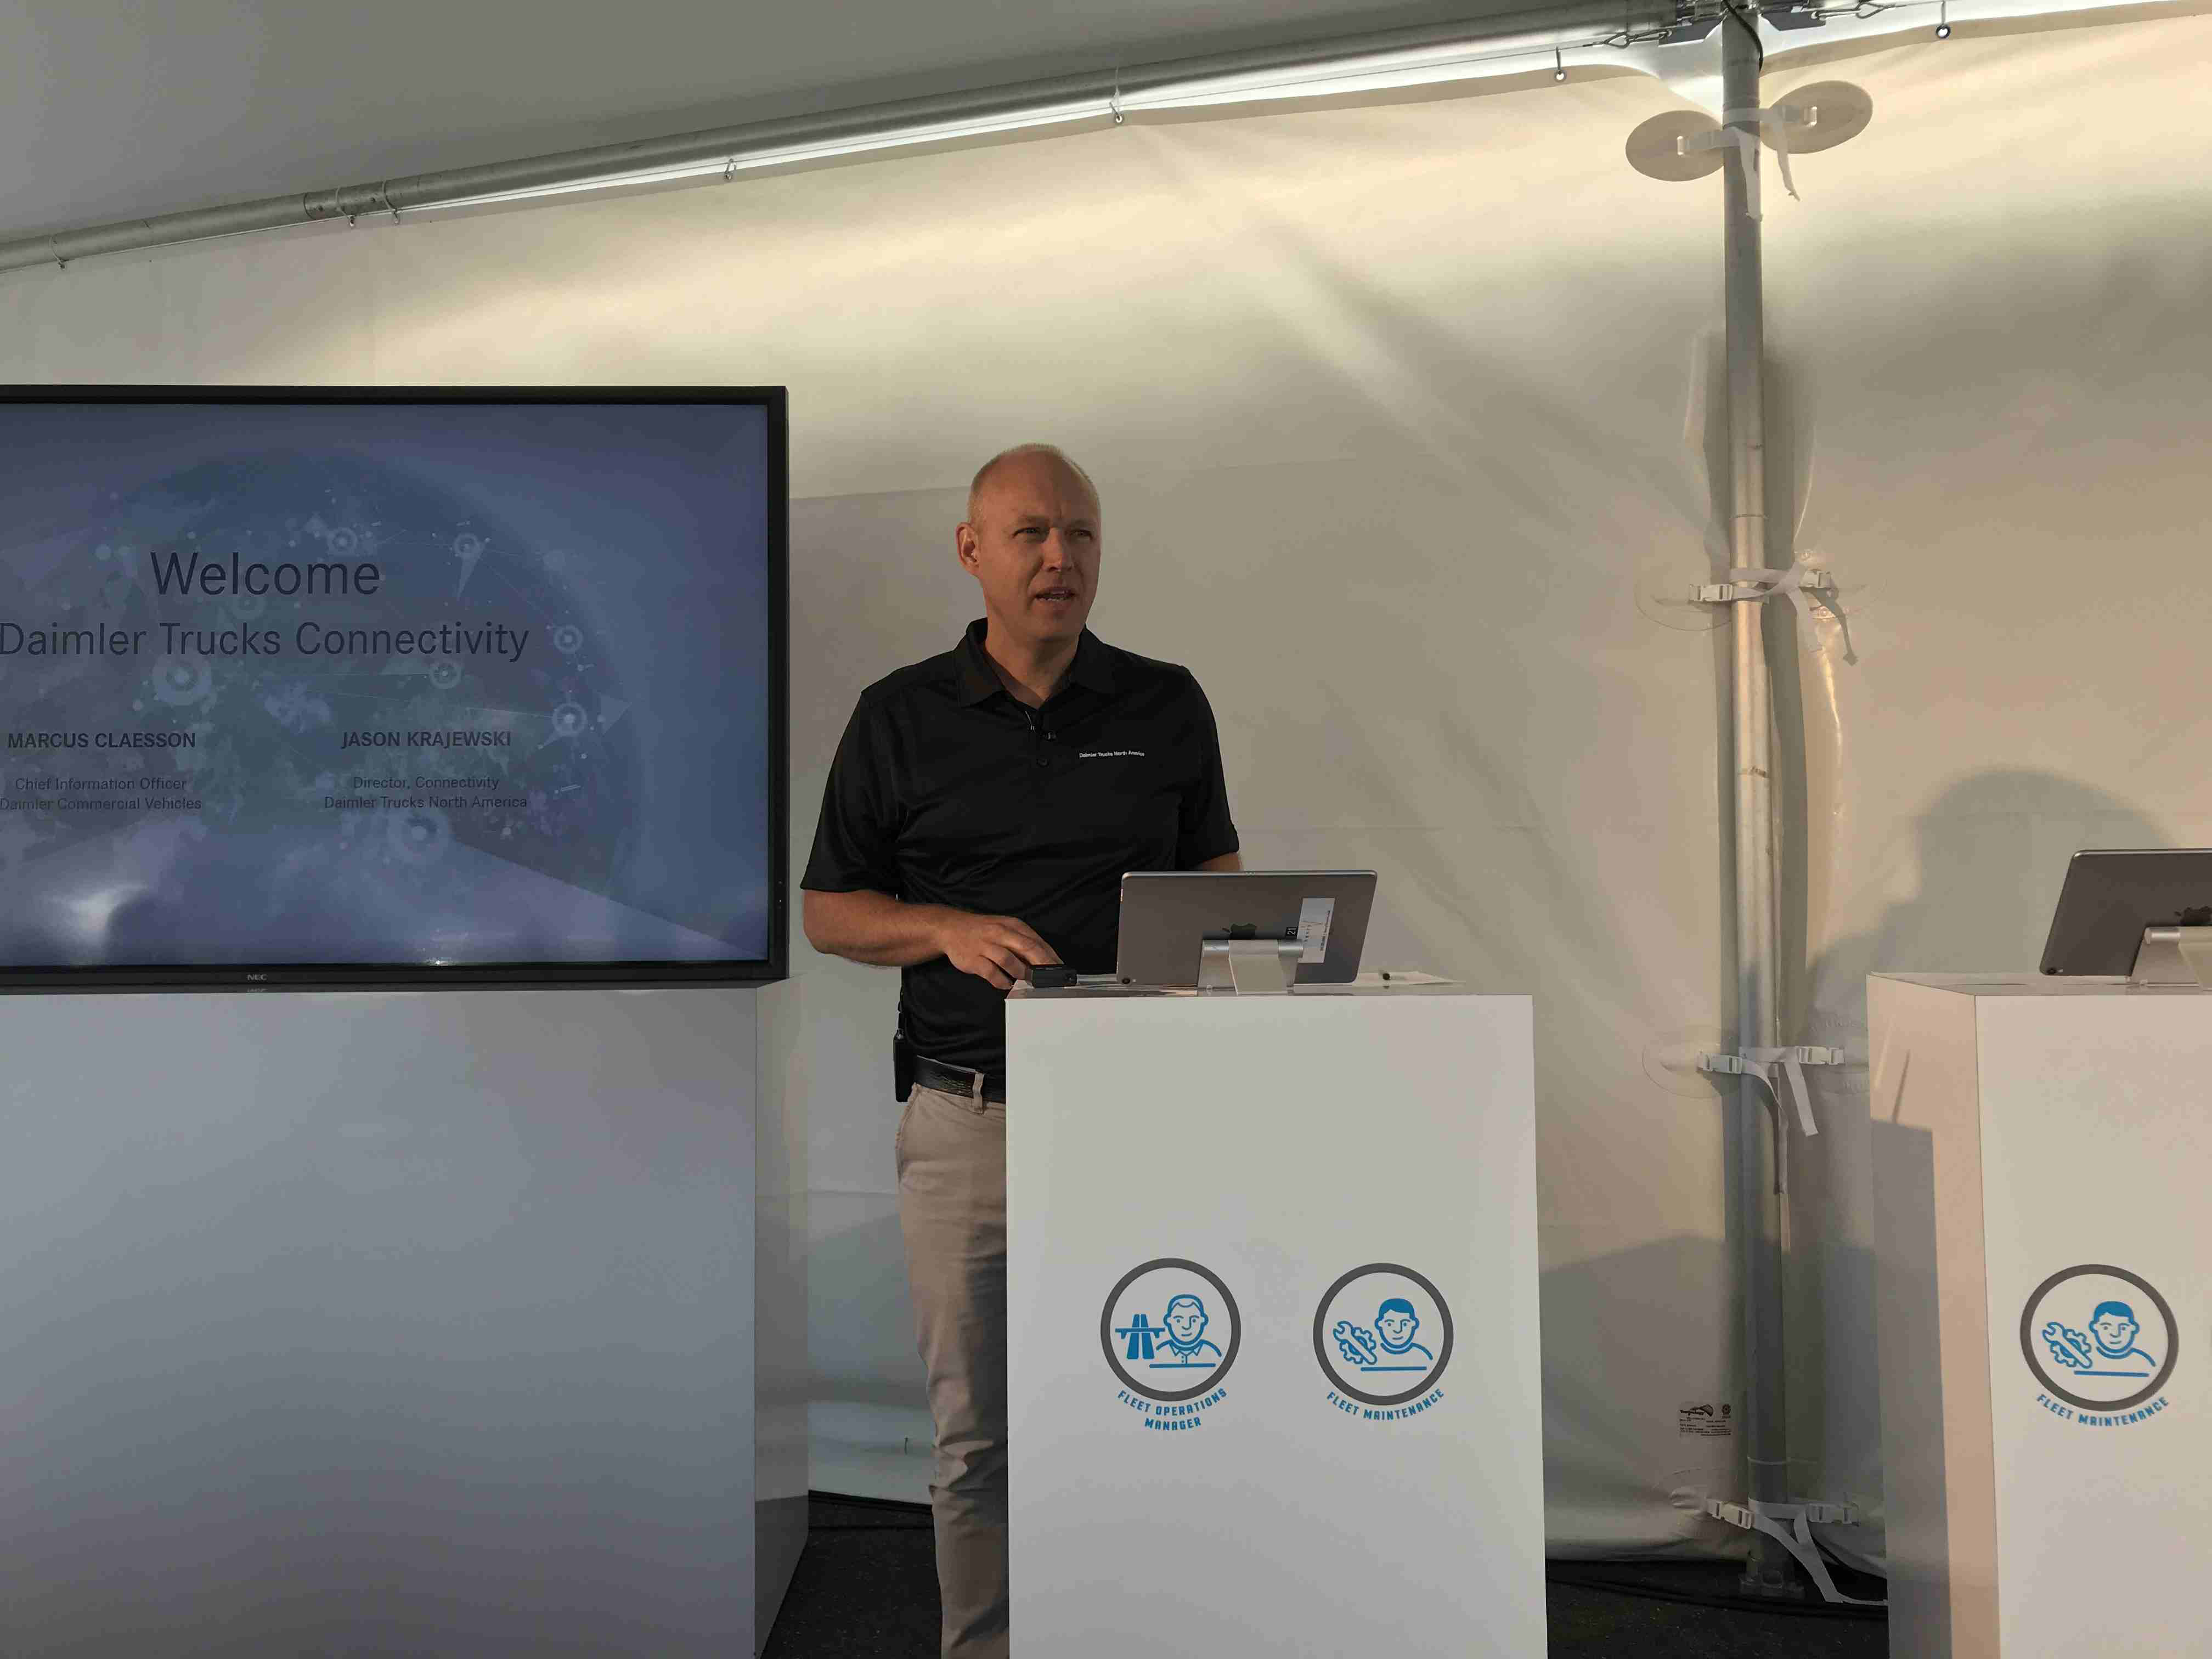 Marcus Claesson of Daimler Commercial Vehicles giving a presentation